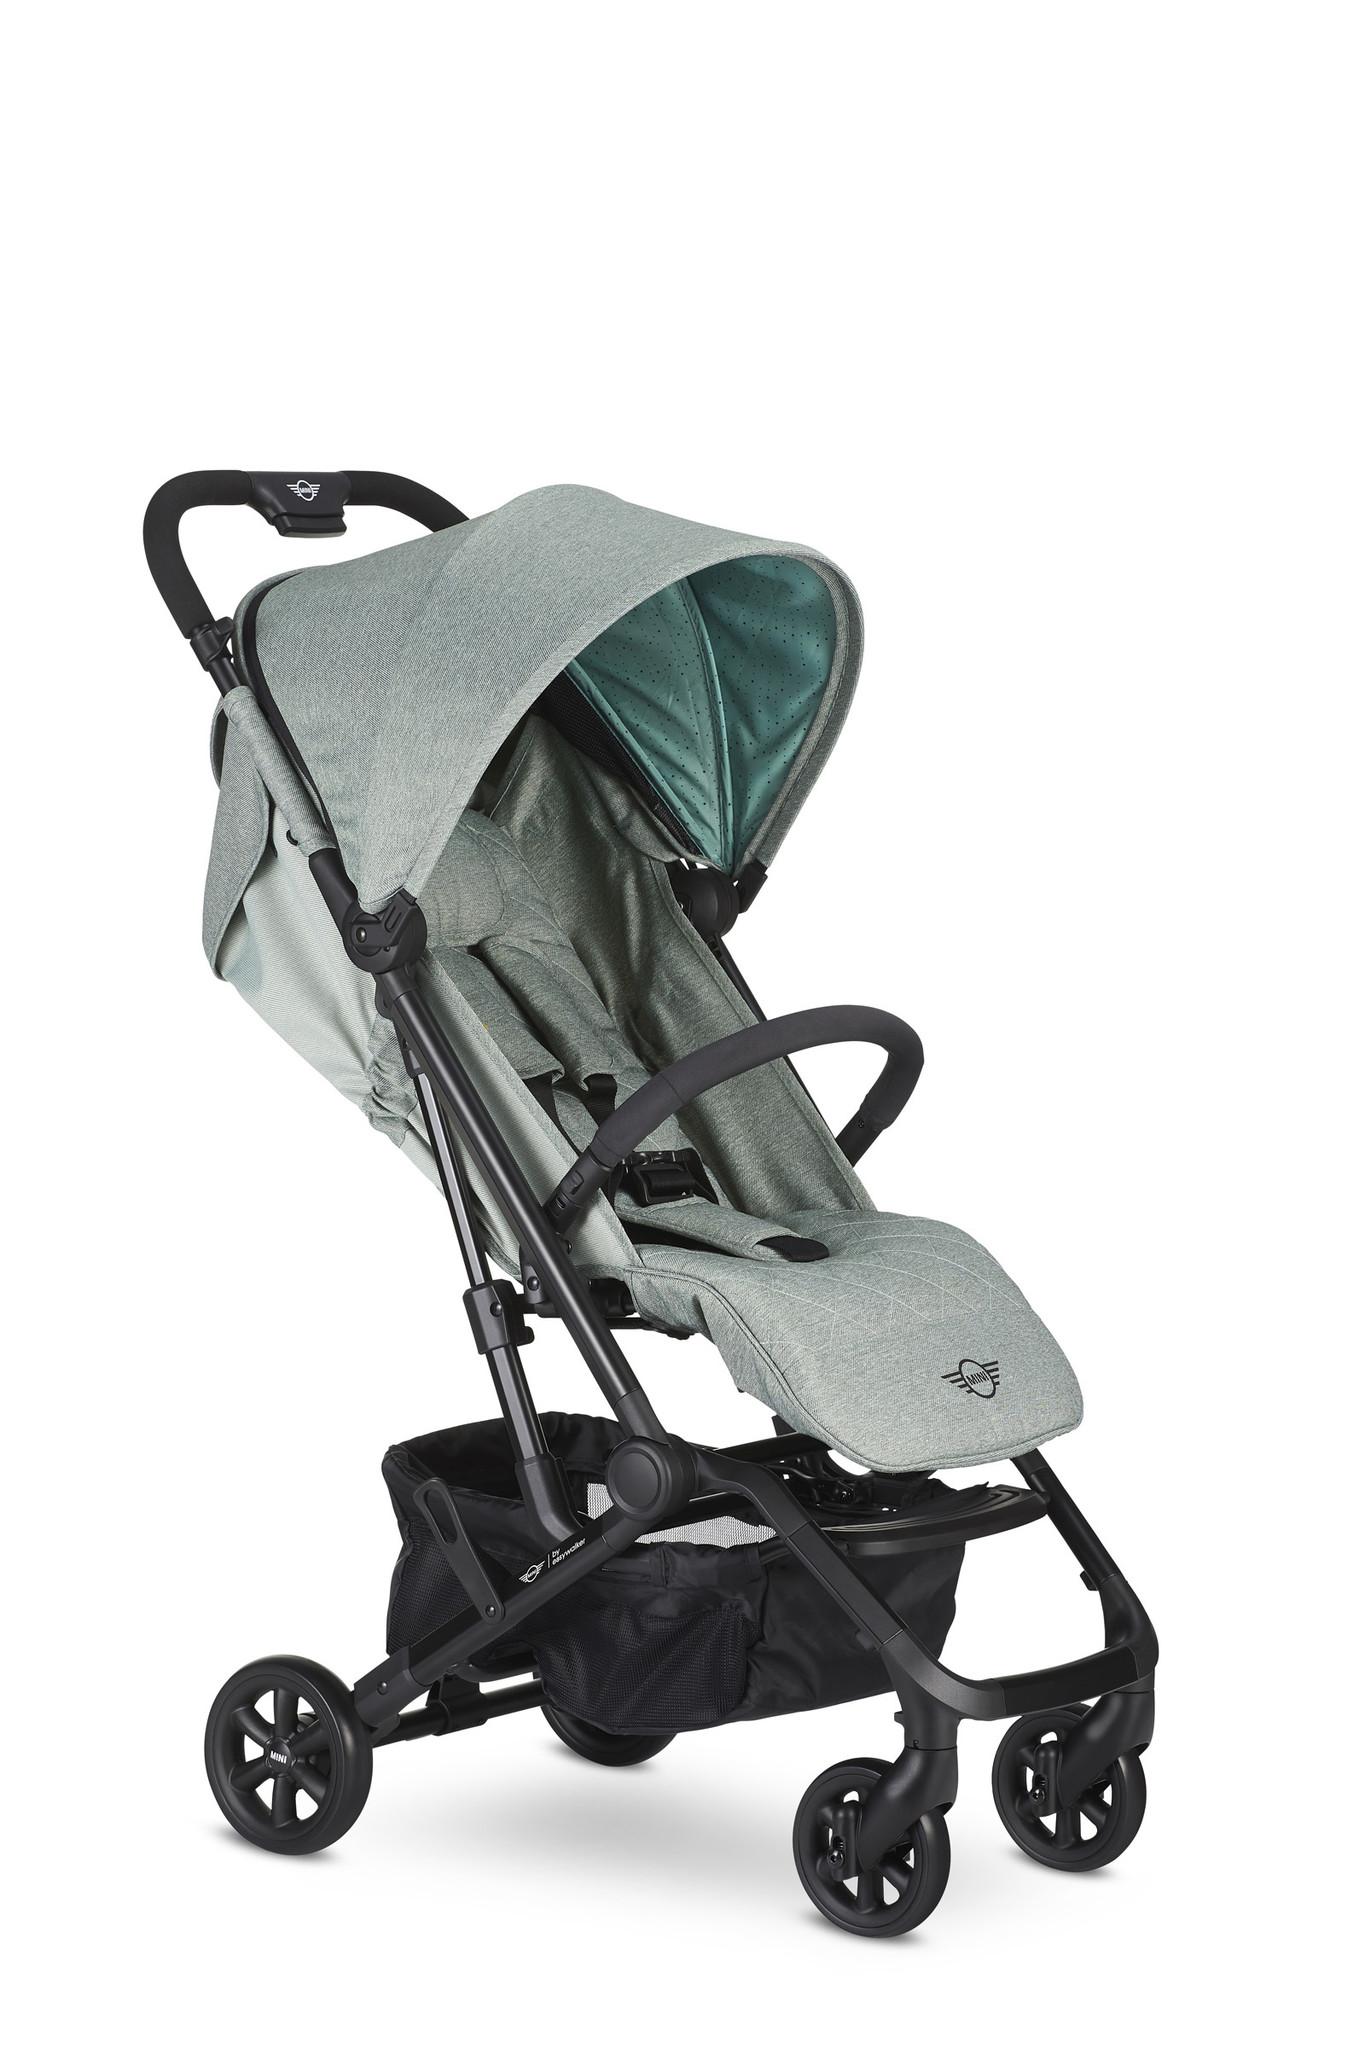 Easywalker MINI by Easywalker buggy XS Aspen Green Exclusive (2019 Model)